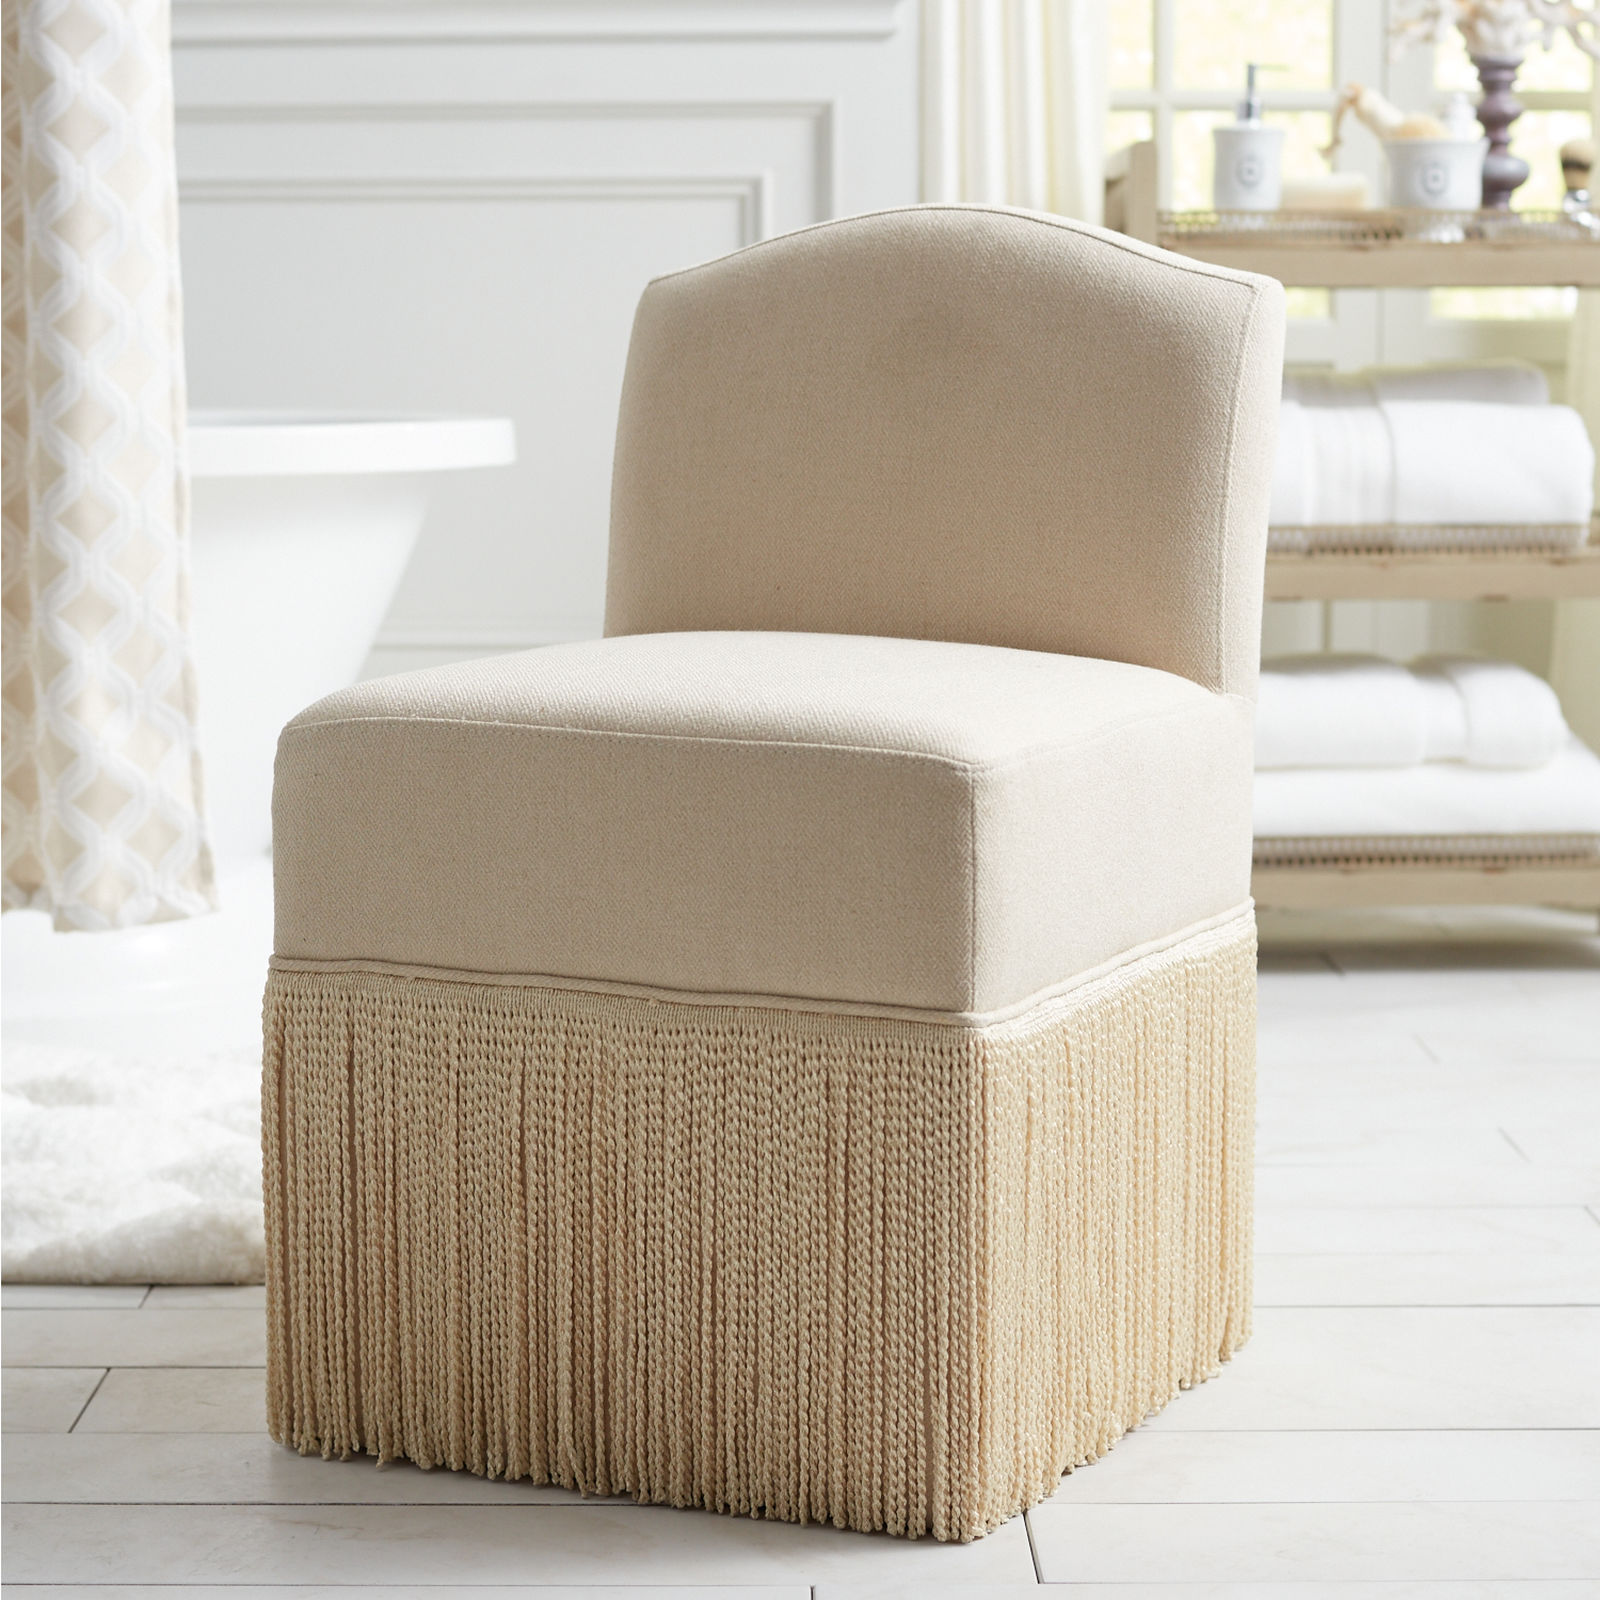 Dazzling vanity stools for home furniture with vanity stool ikea